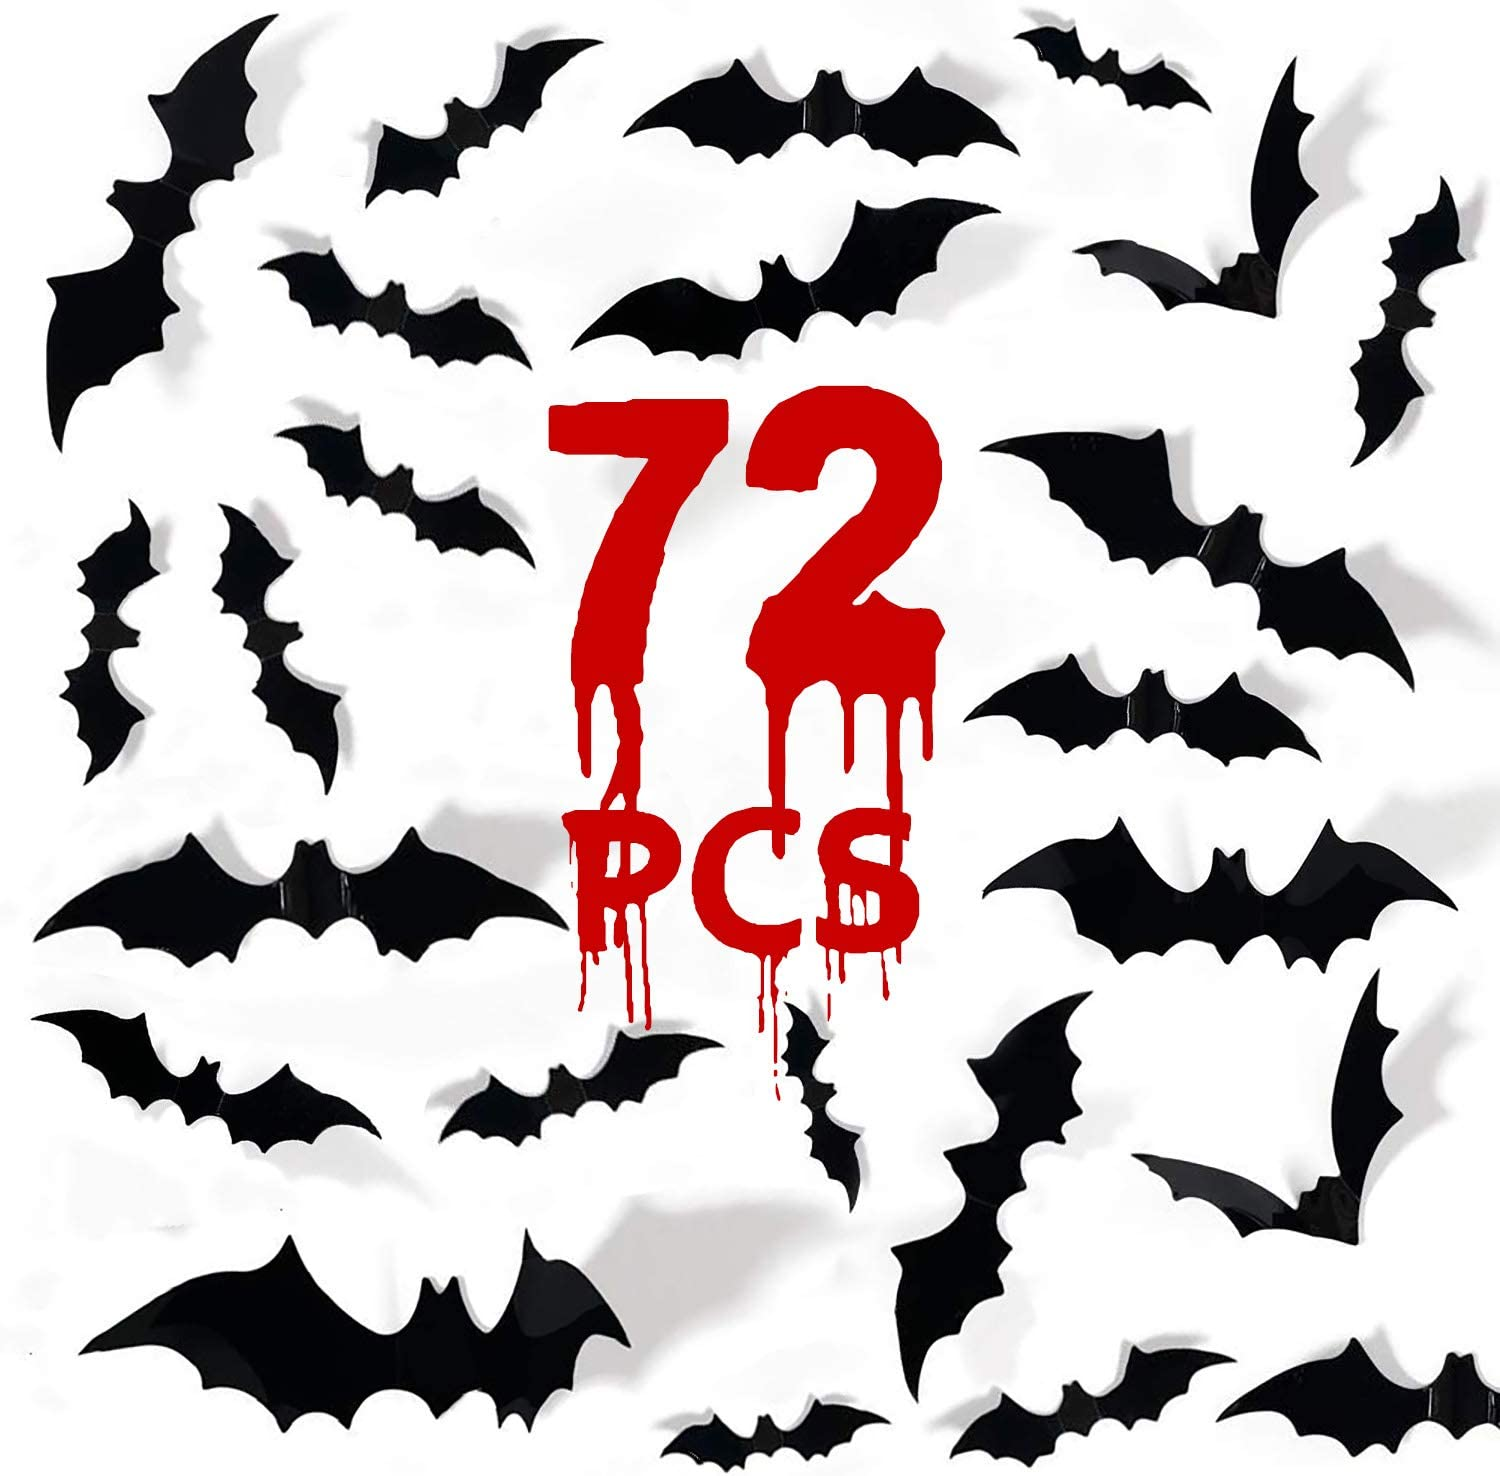 MISS FANTASY Halloween Bats 72PCS Bats Decor 3D Bat Decorations Bats for Wall Black Plastic Bat Decal Stickers for Home Office Wall